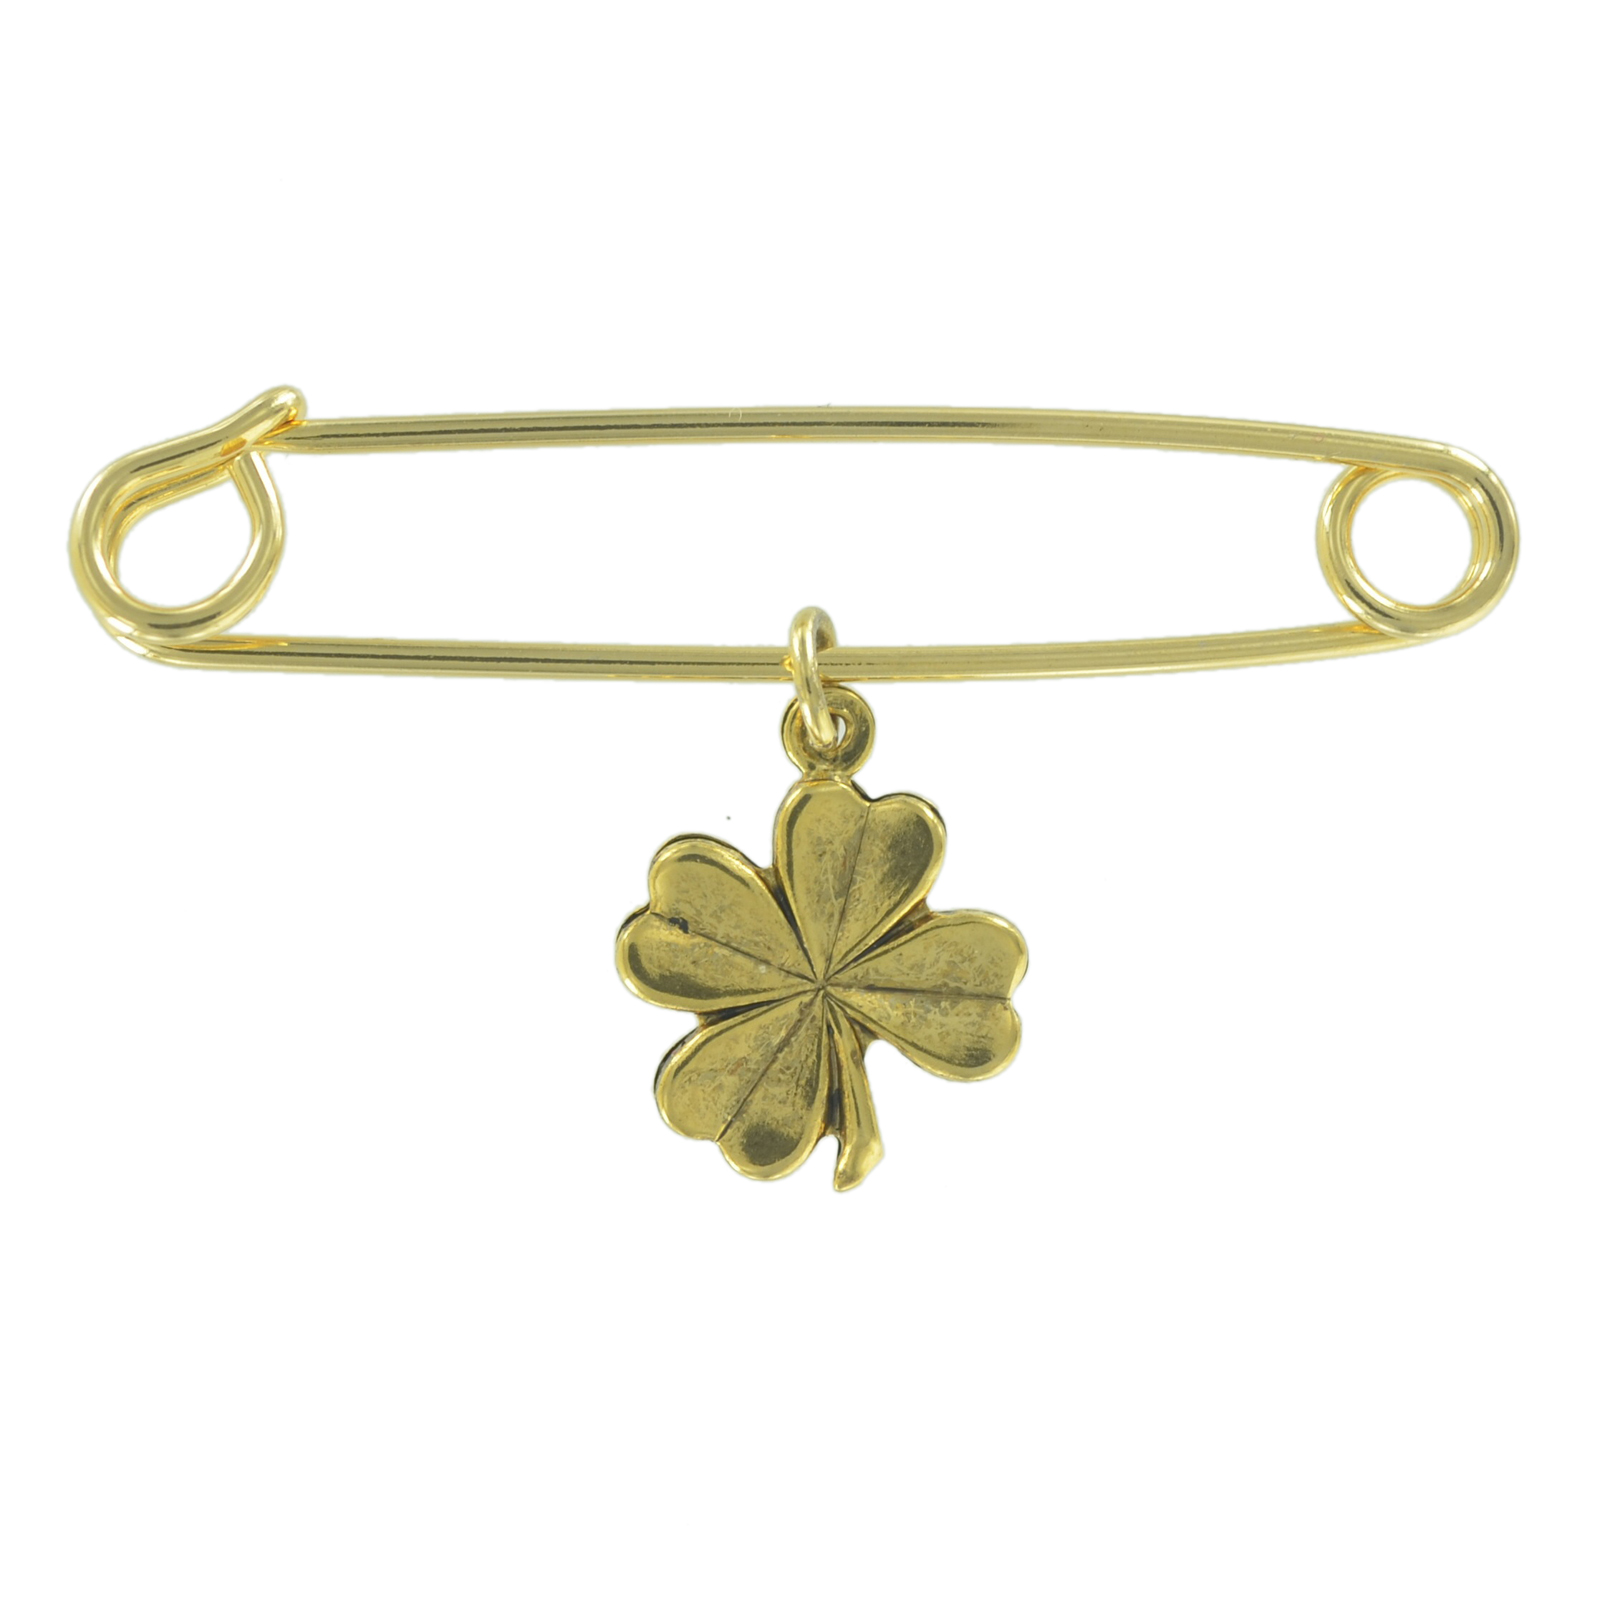 """Safety Pin Brooch 2"""" Gold Tone Four Leaf Clover Good Luck Irish Symbol Charm Dangle Middle by Ky & Co"""